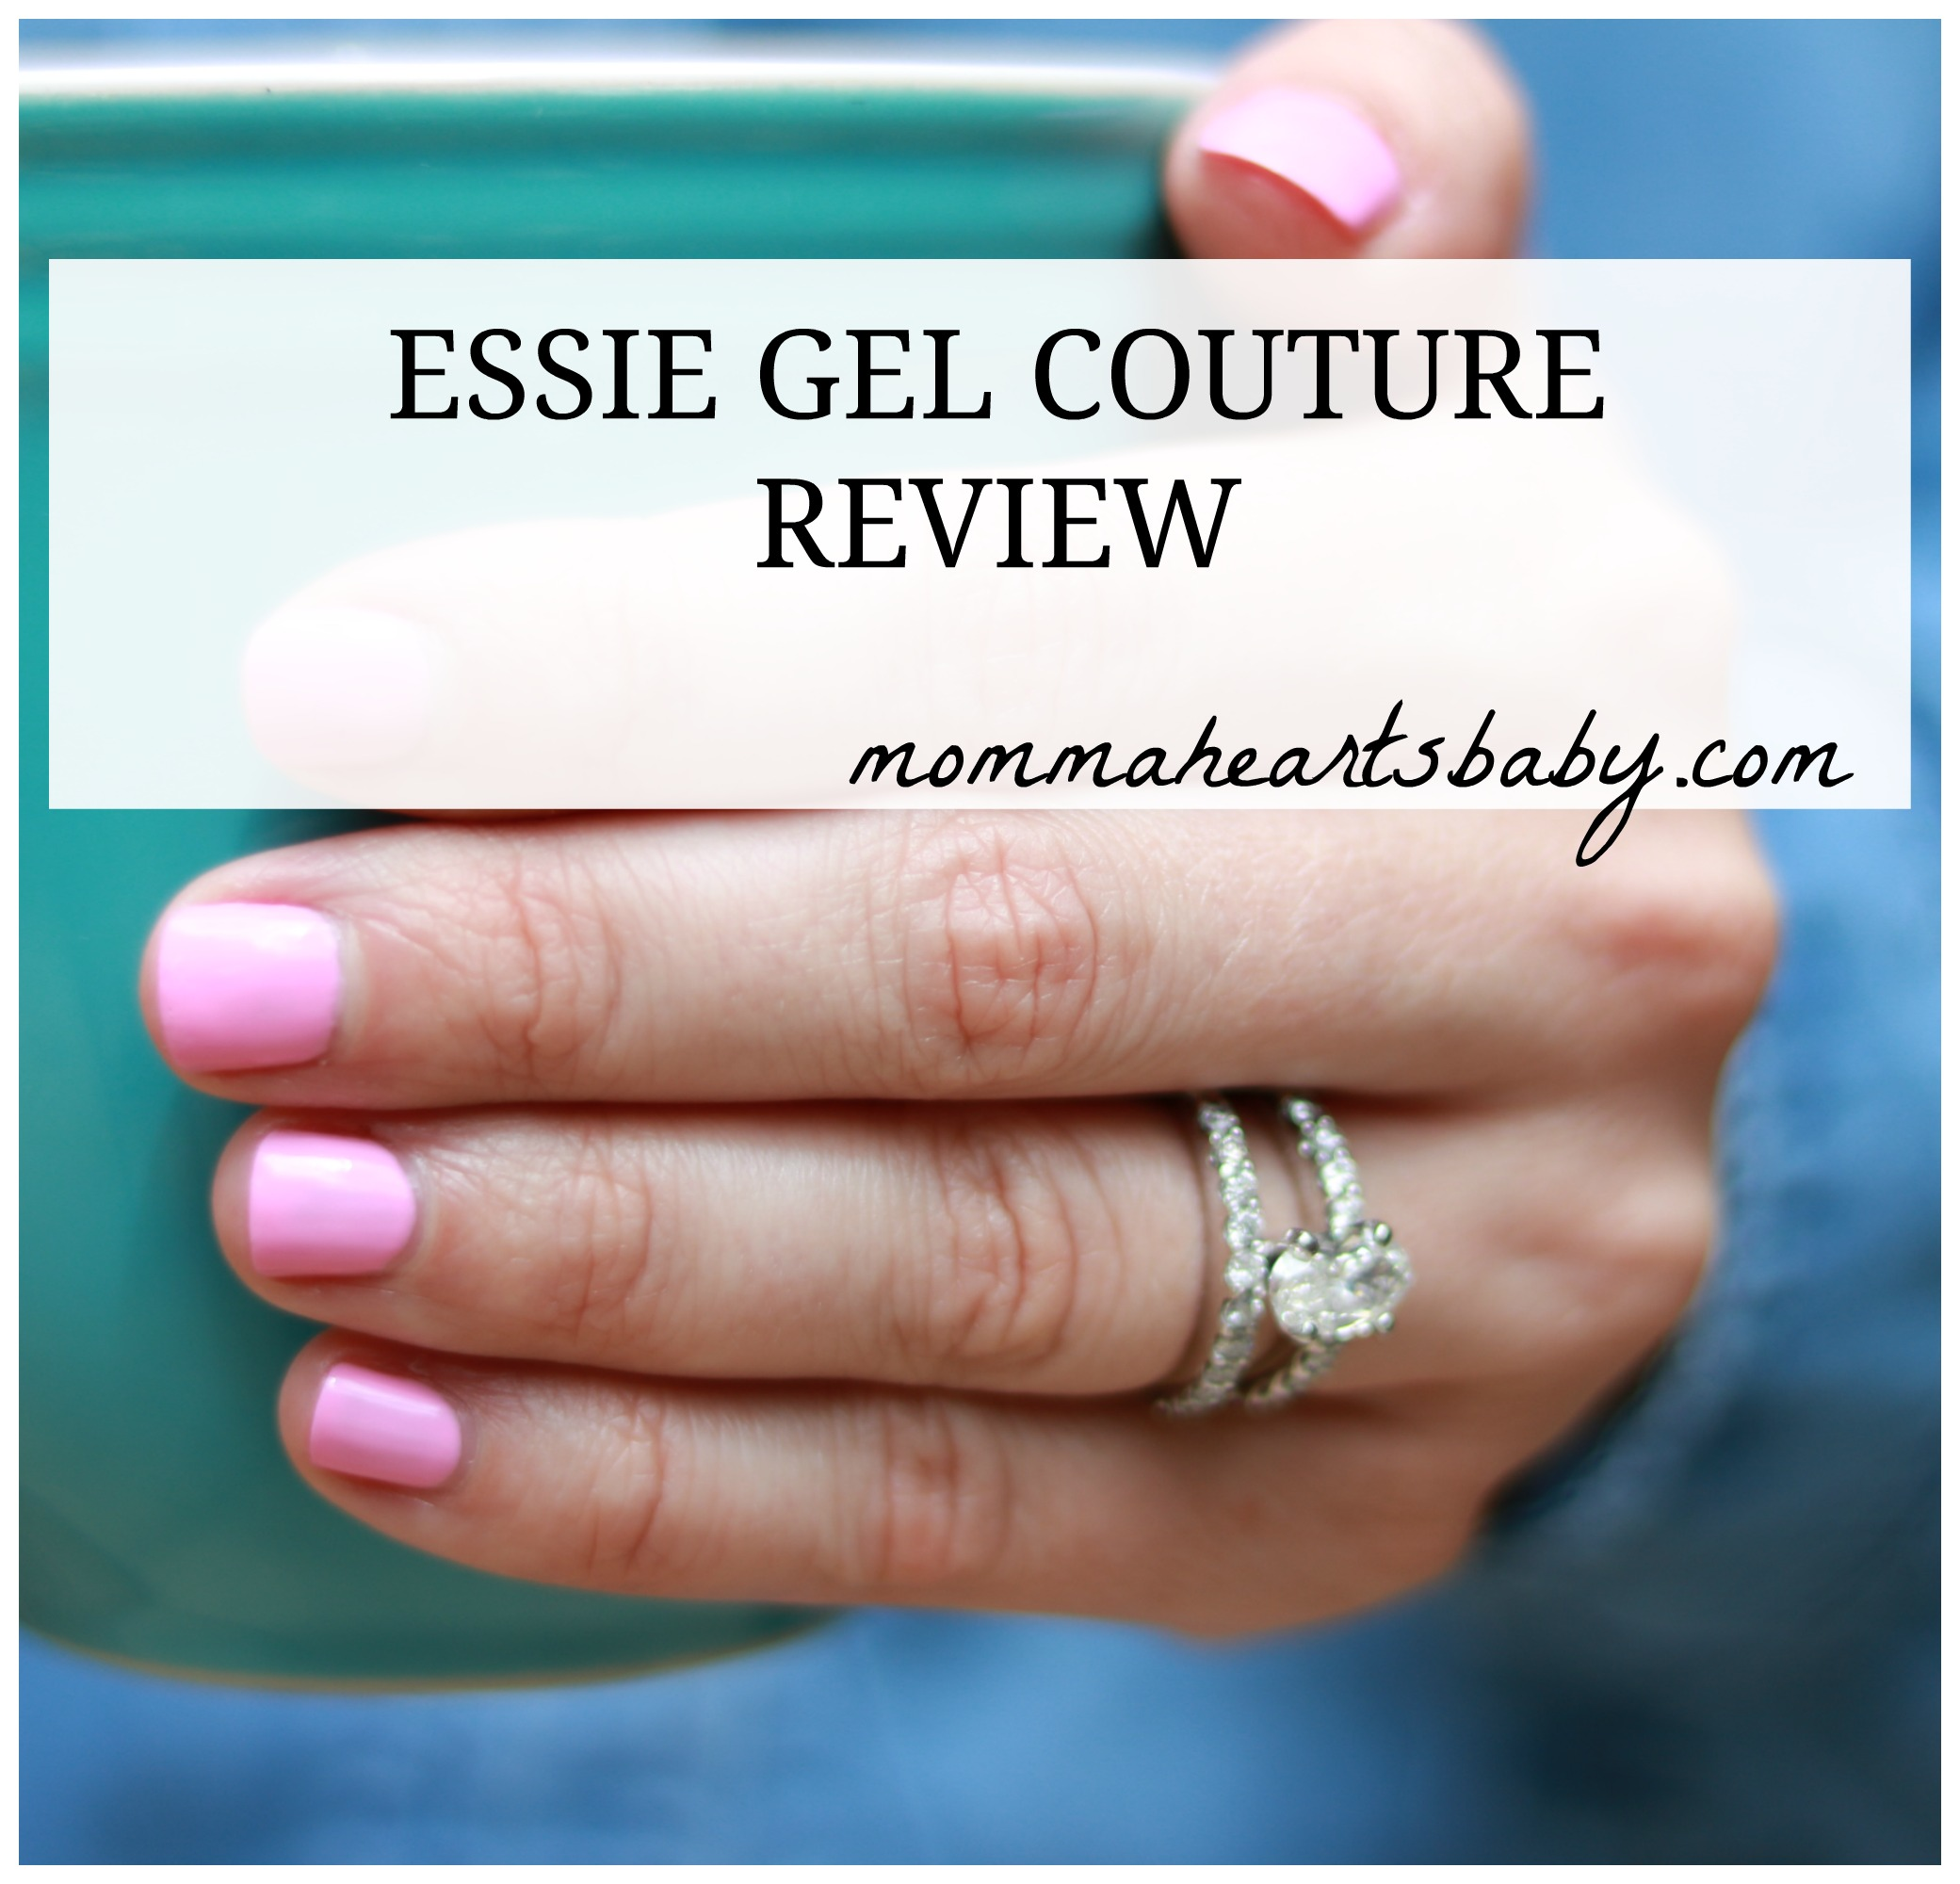 ESSIE GEL COUTURE POLISH REVIEW